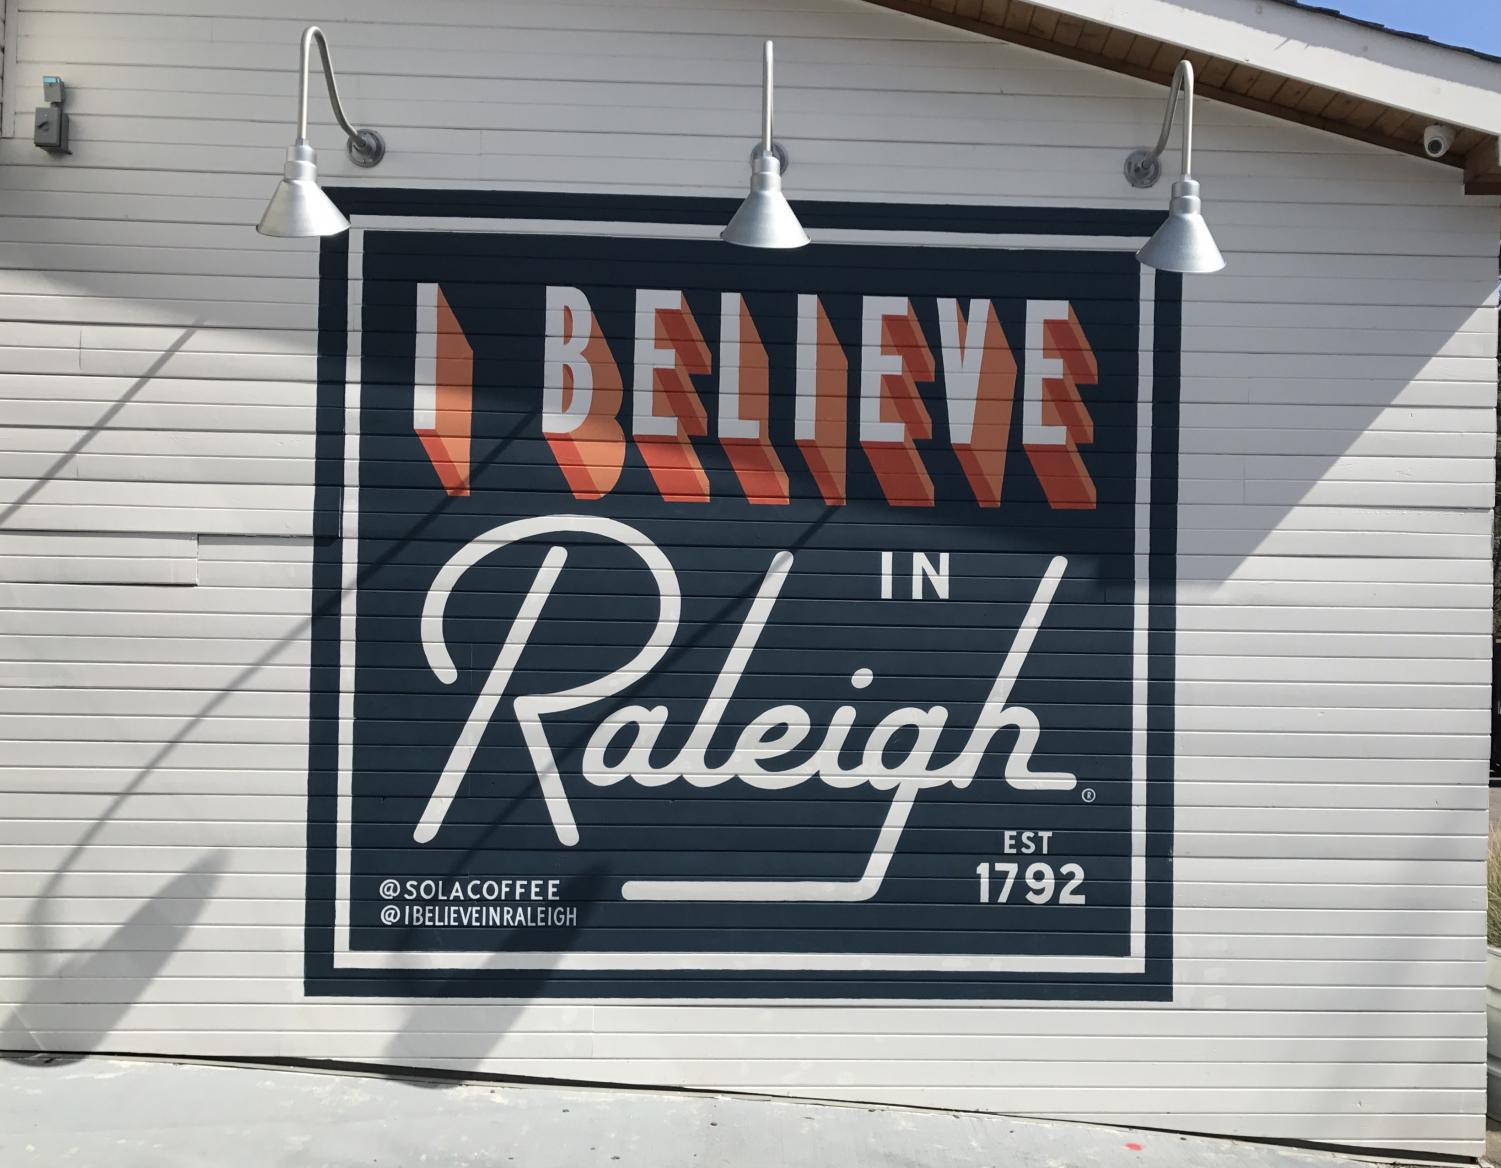 Representing the I Believe in Raleigh movement, the mural is painted across the back of the picturesque Sola Coffee Café. Sola is the perfect place for anyone looking for a cozy, laid-back dining experience and a taste of some of the best food in Raleigh.